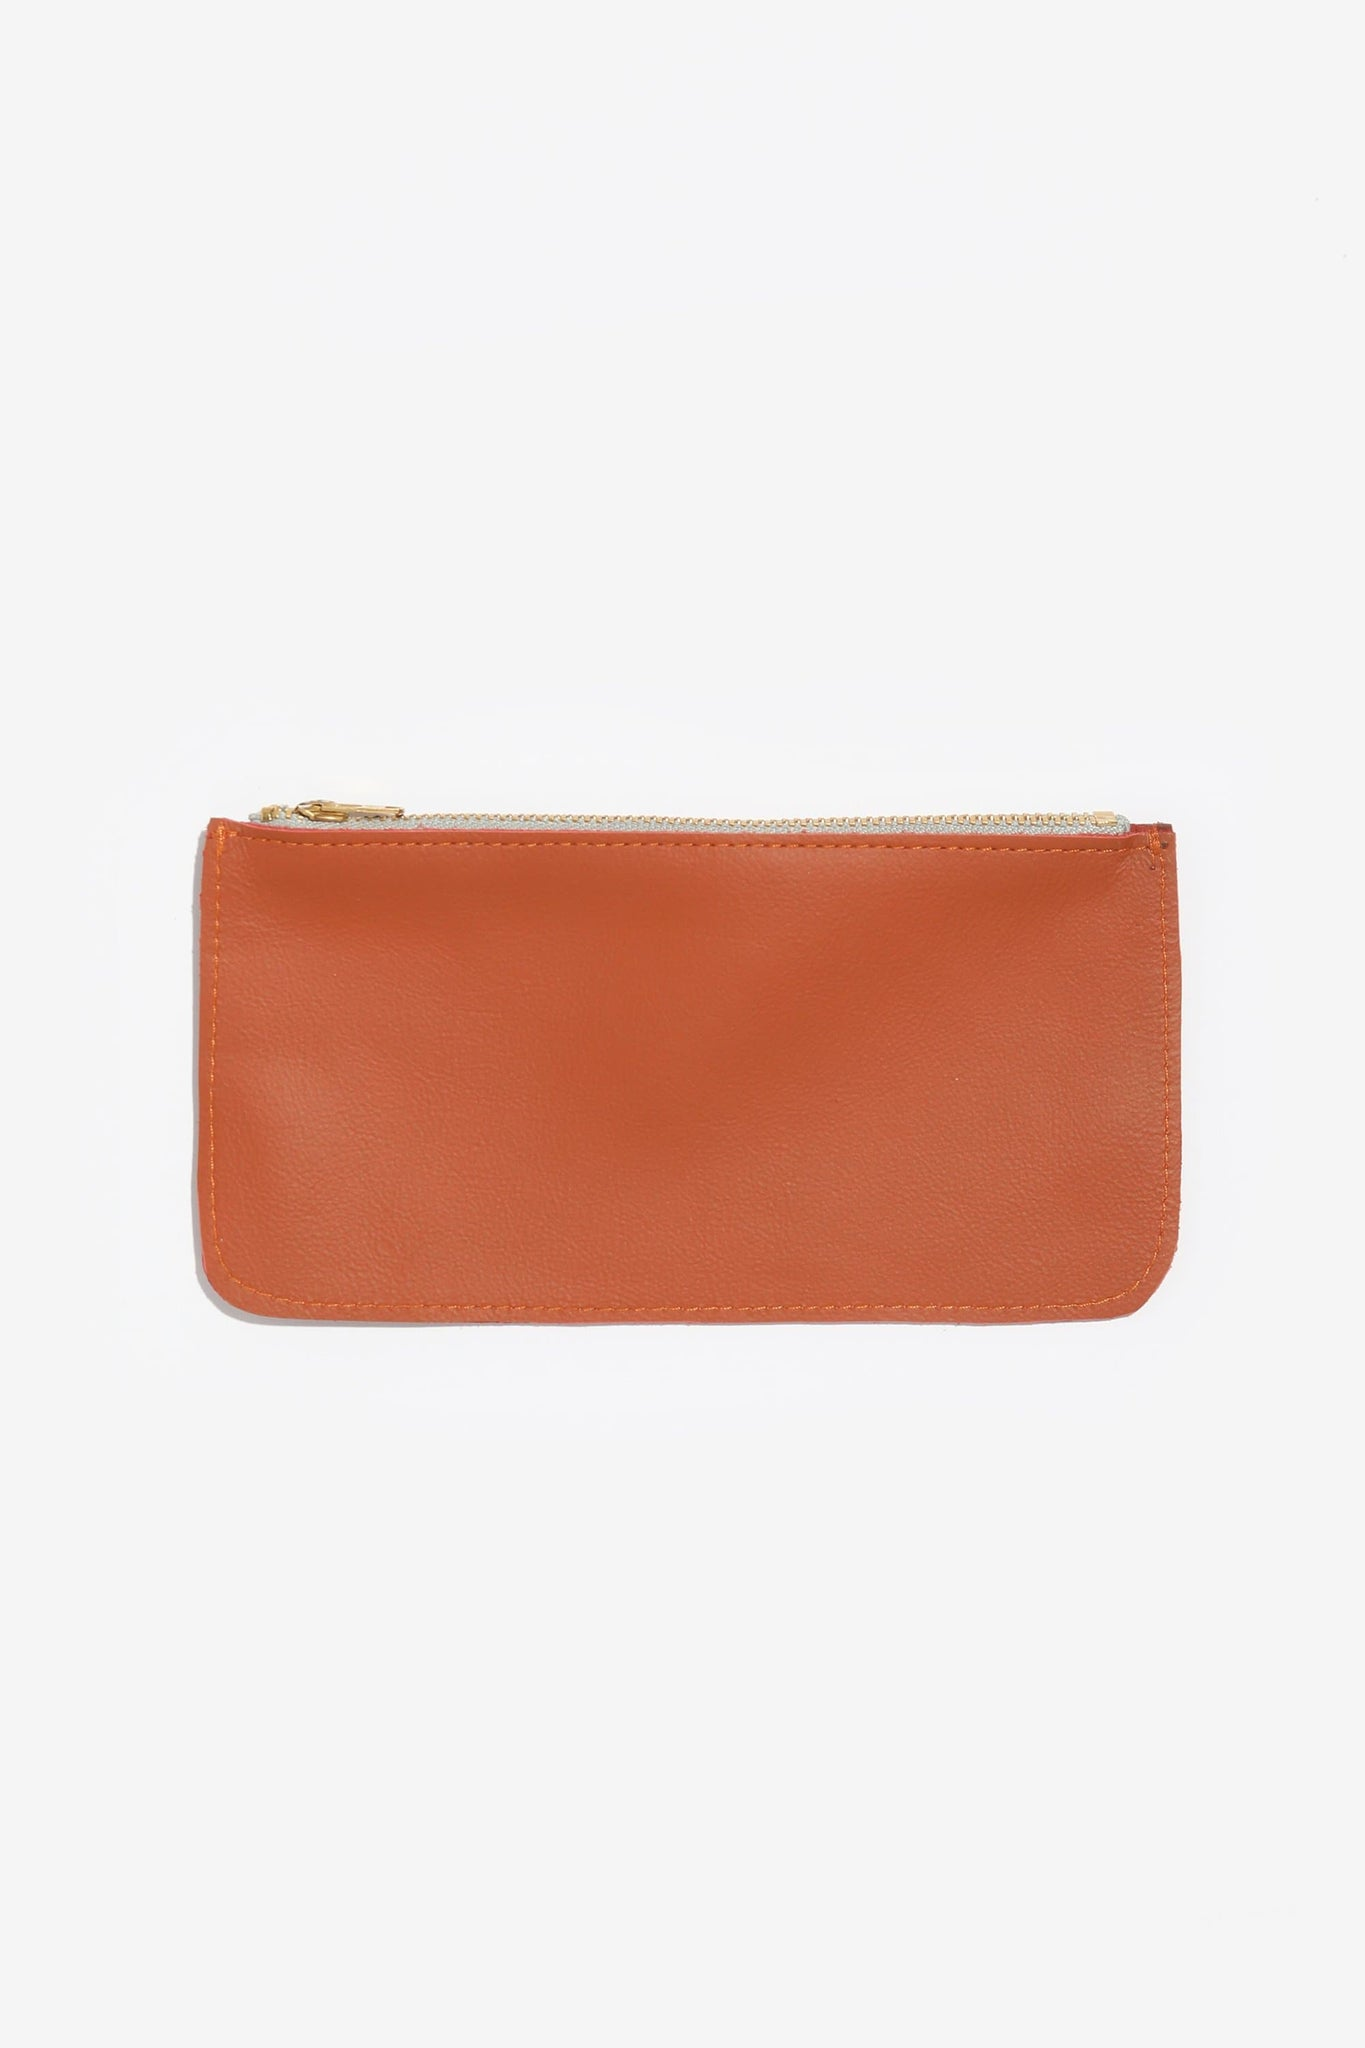 RLH3435 - Leather Wallet Pouch